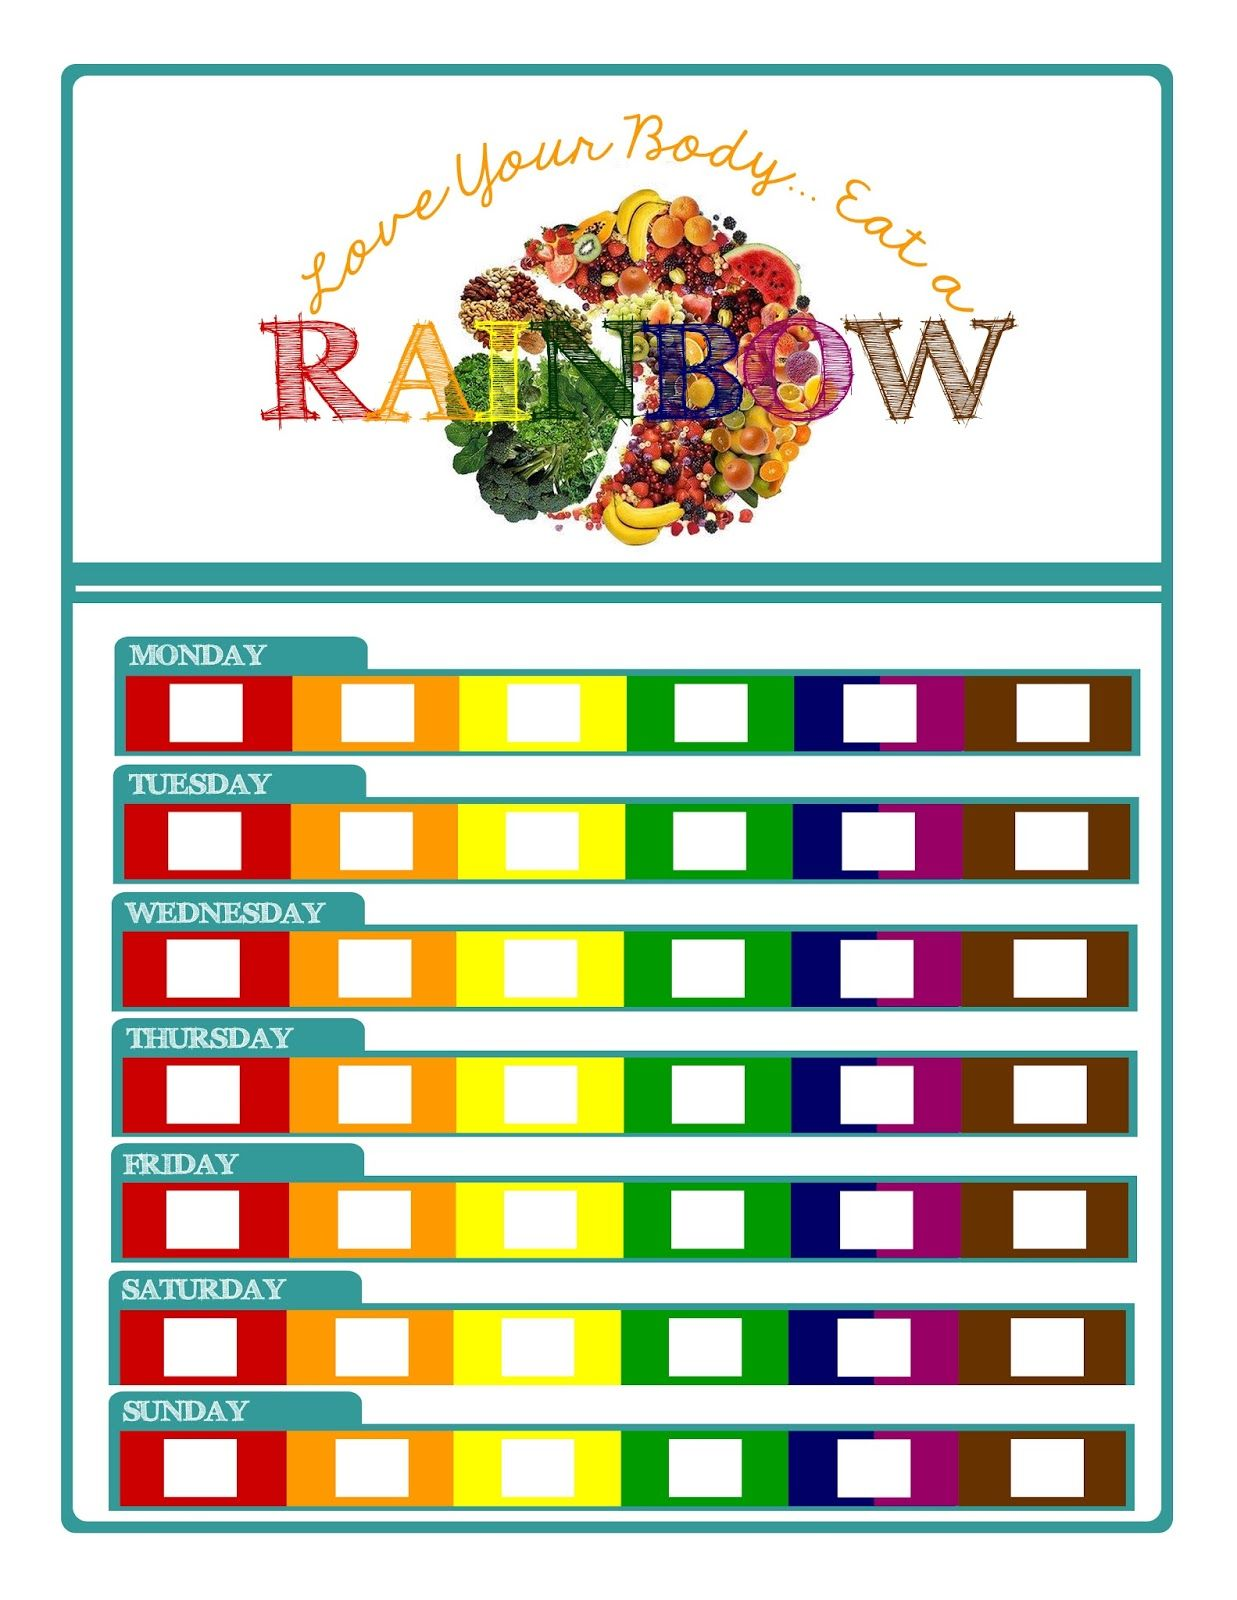 FREE eat the rainbow chart! Encourages healthy eating by